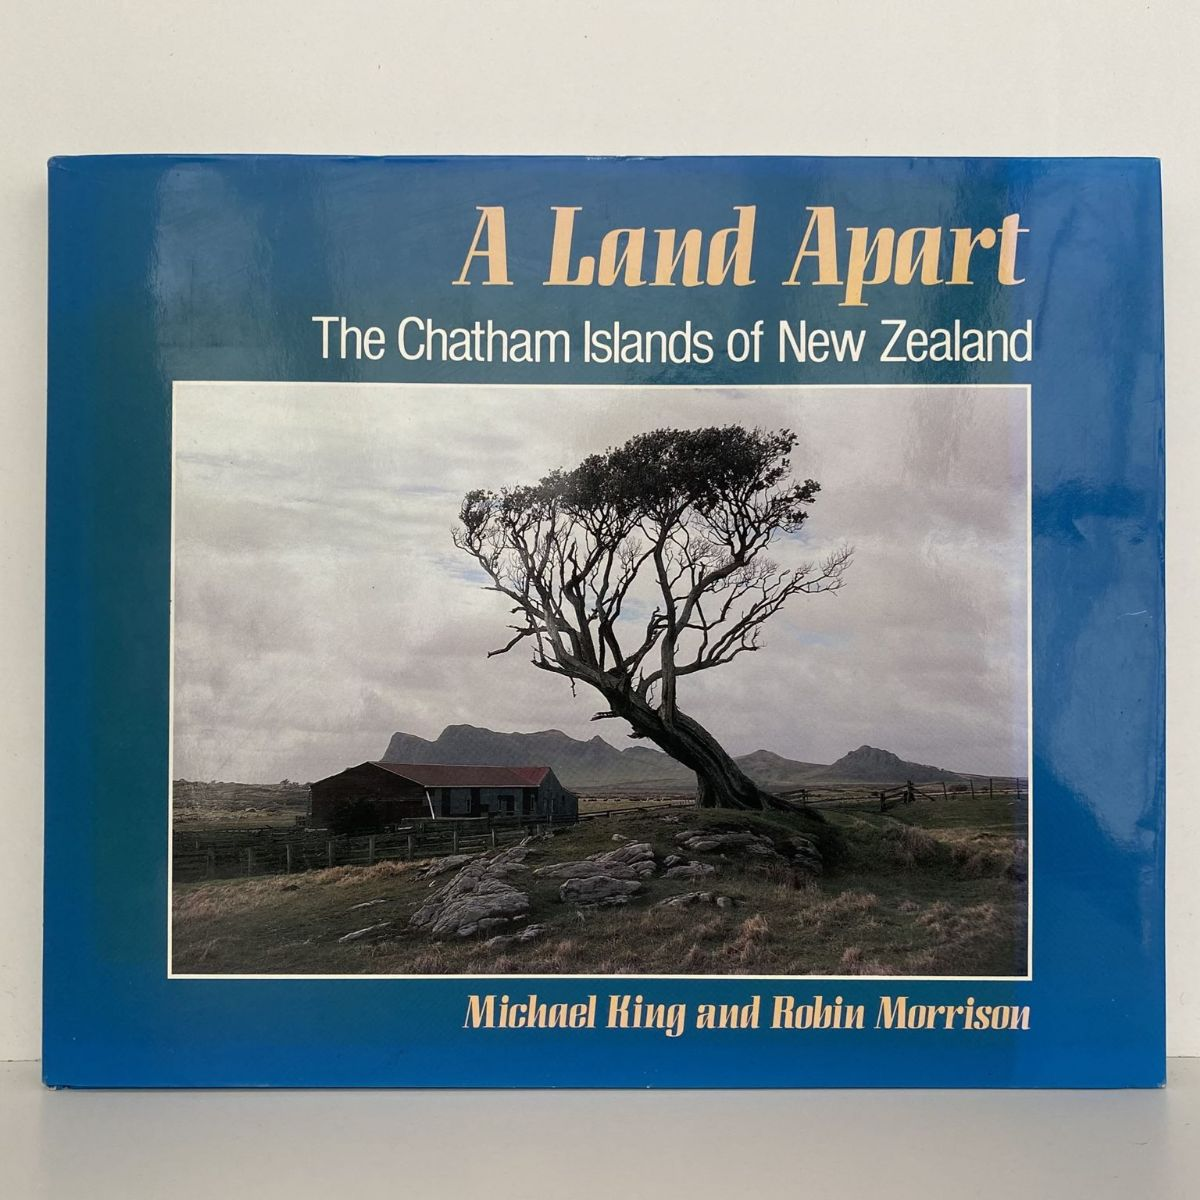 A LAND APART: The Chatham Islands of New Zealand